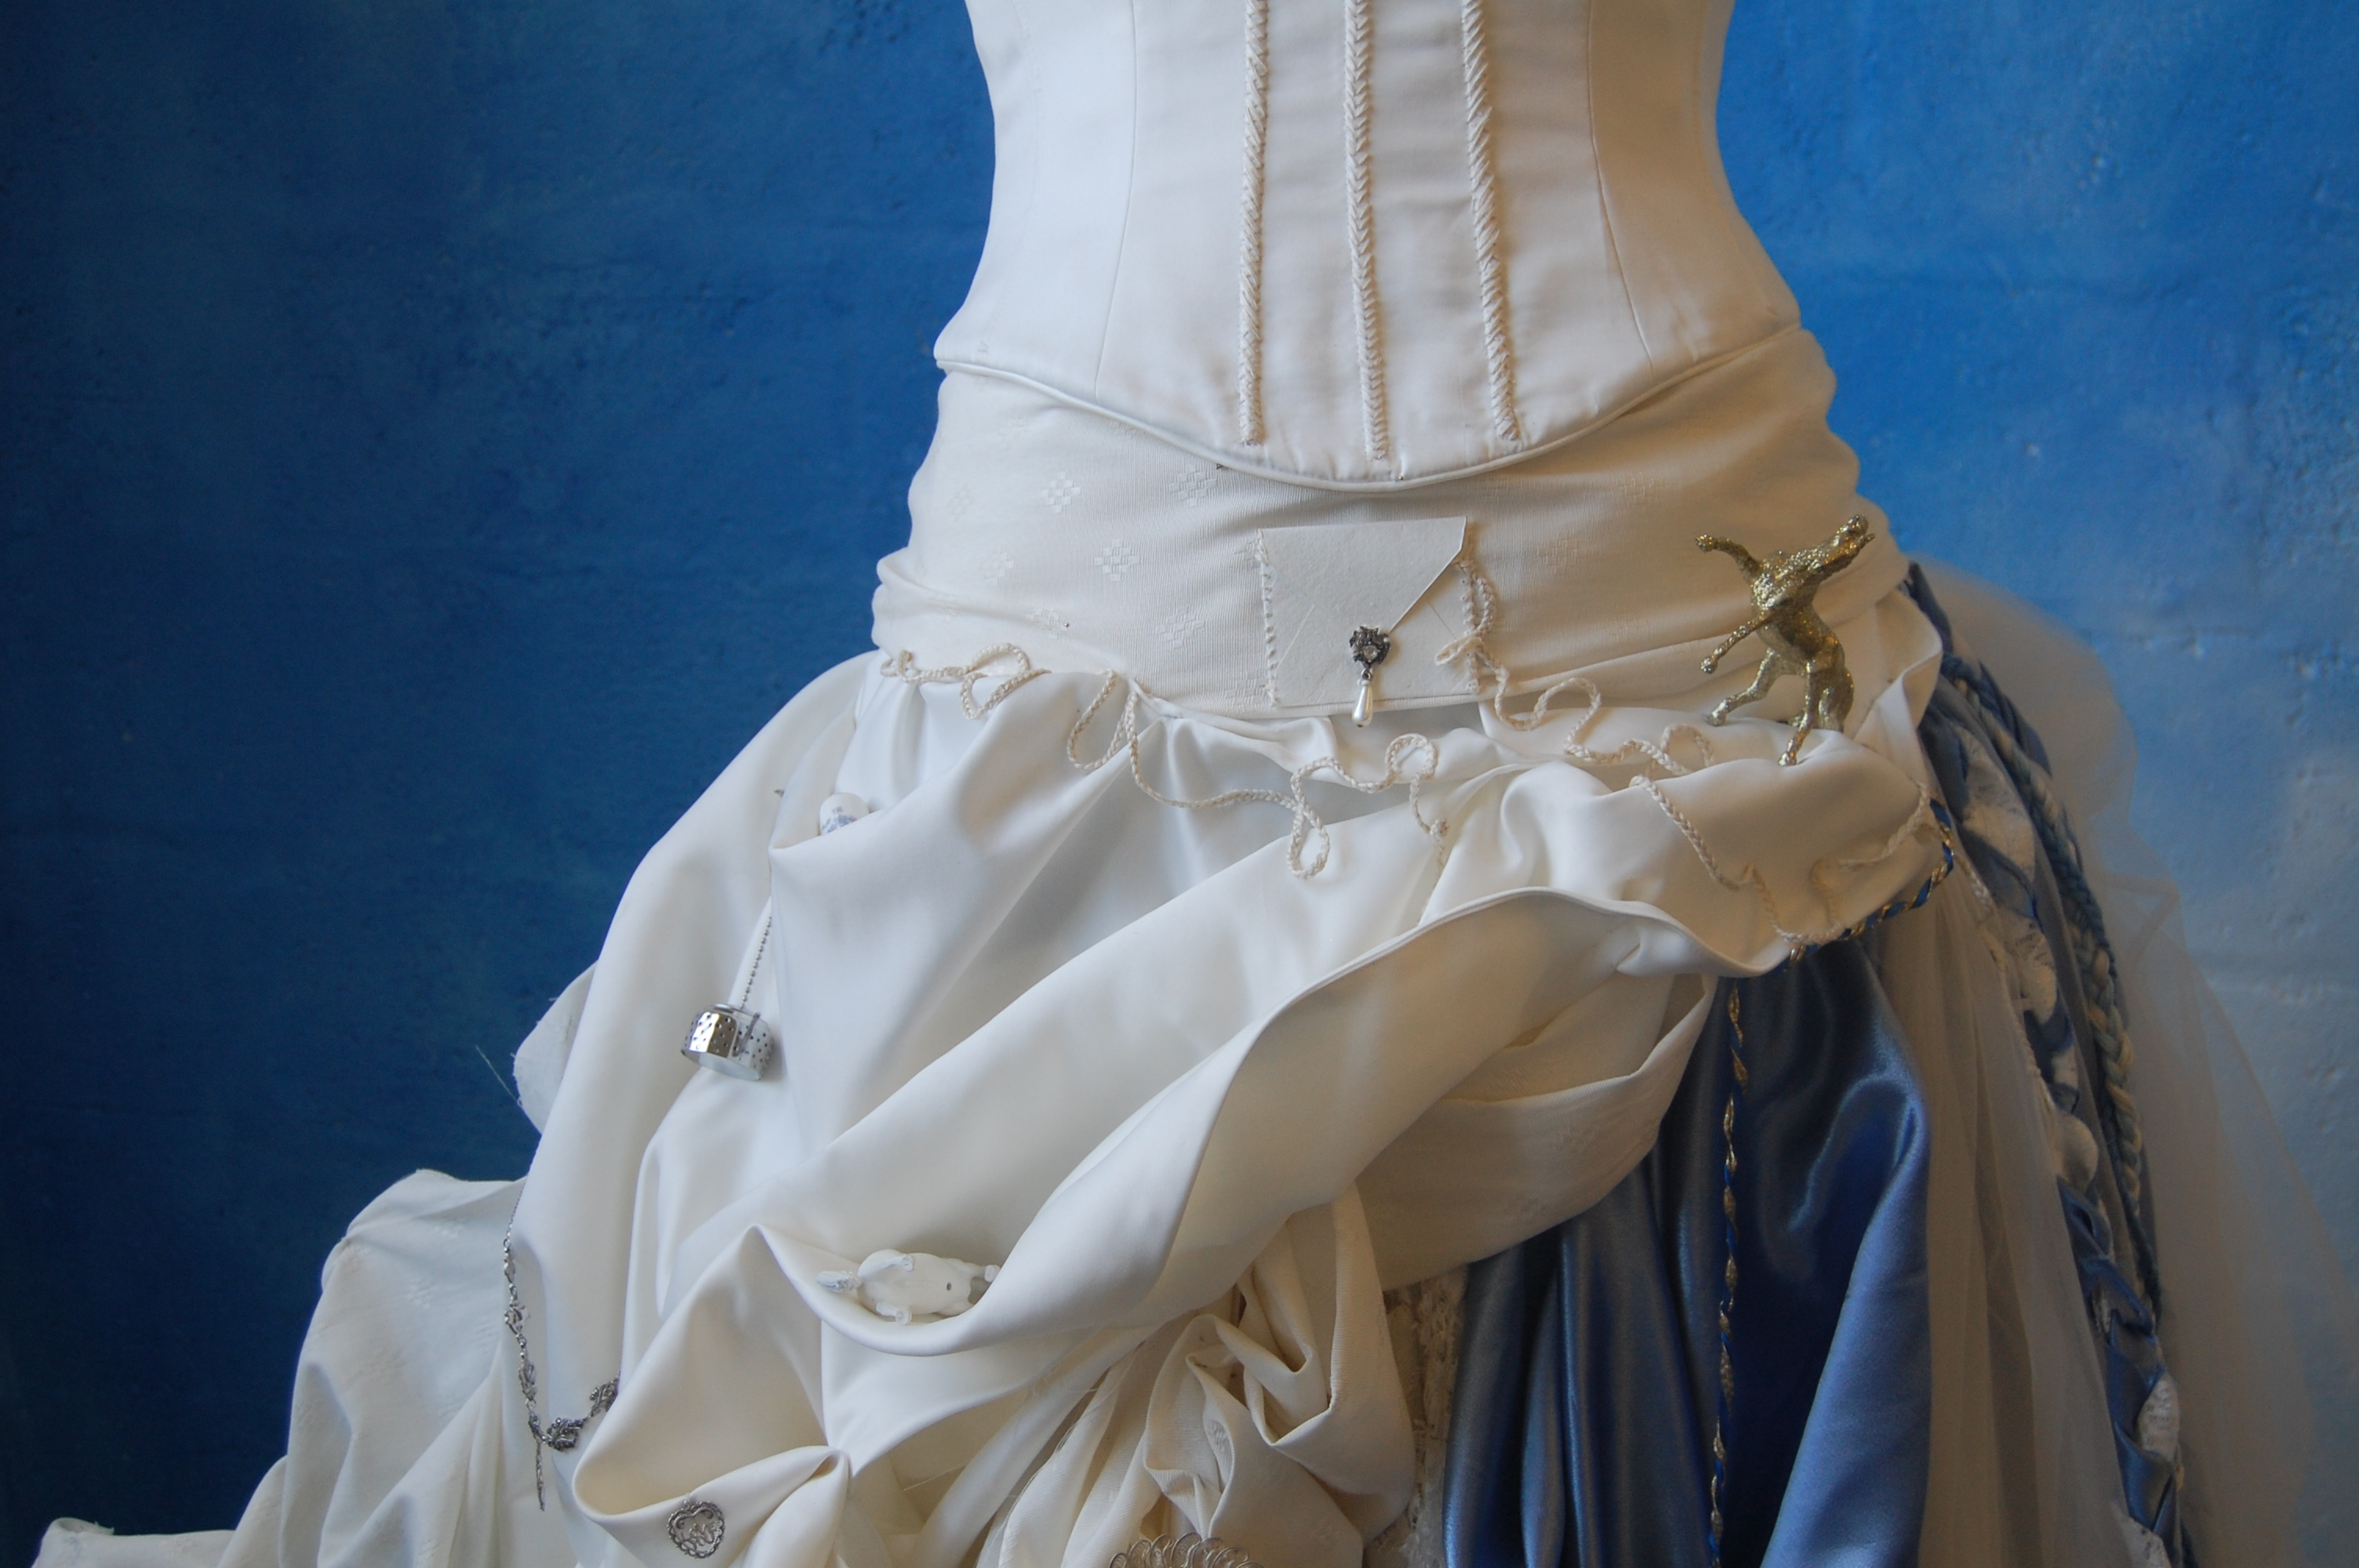 The Dress - detail